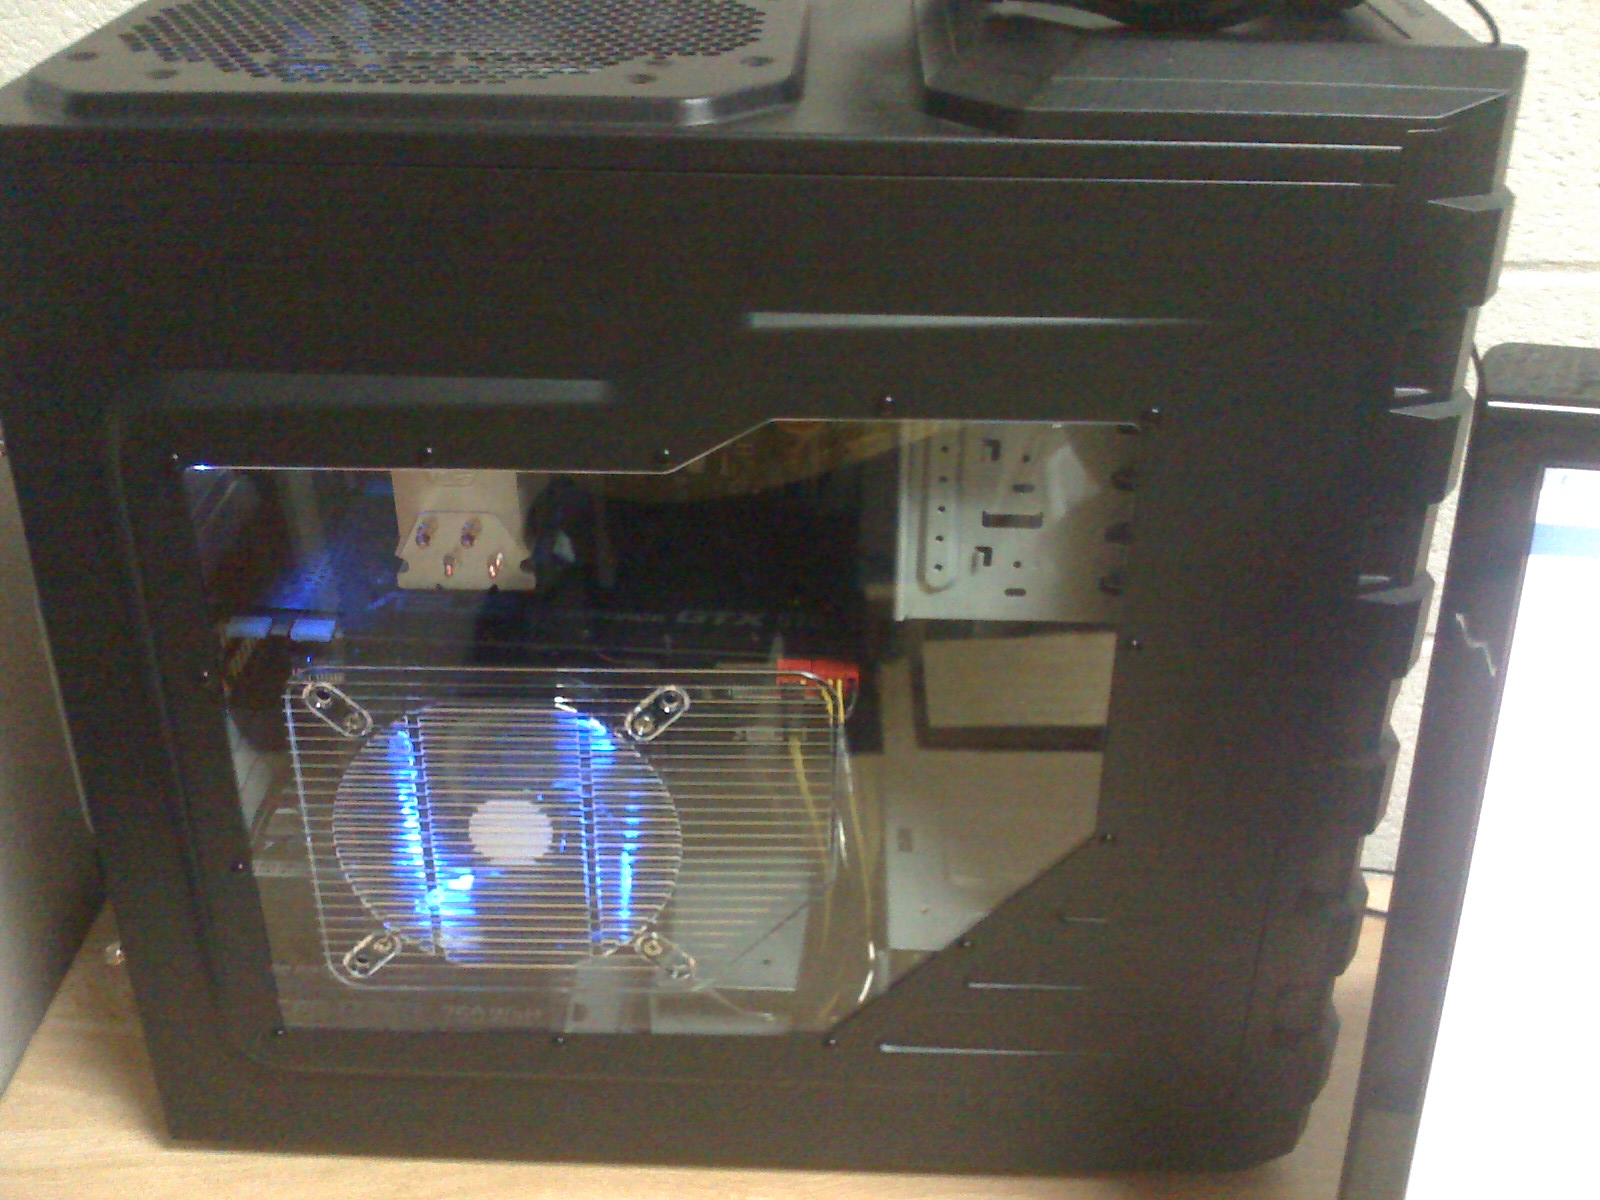 70301159_moto_0528.jpeg My computer with the new side door and 2 SickleFlow 120mm blue LED fans on the side and back.